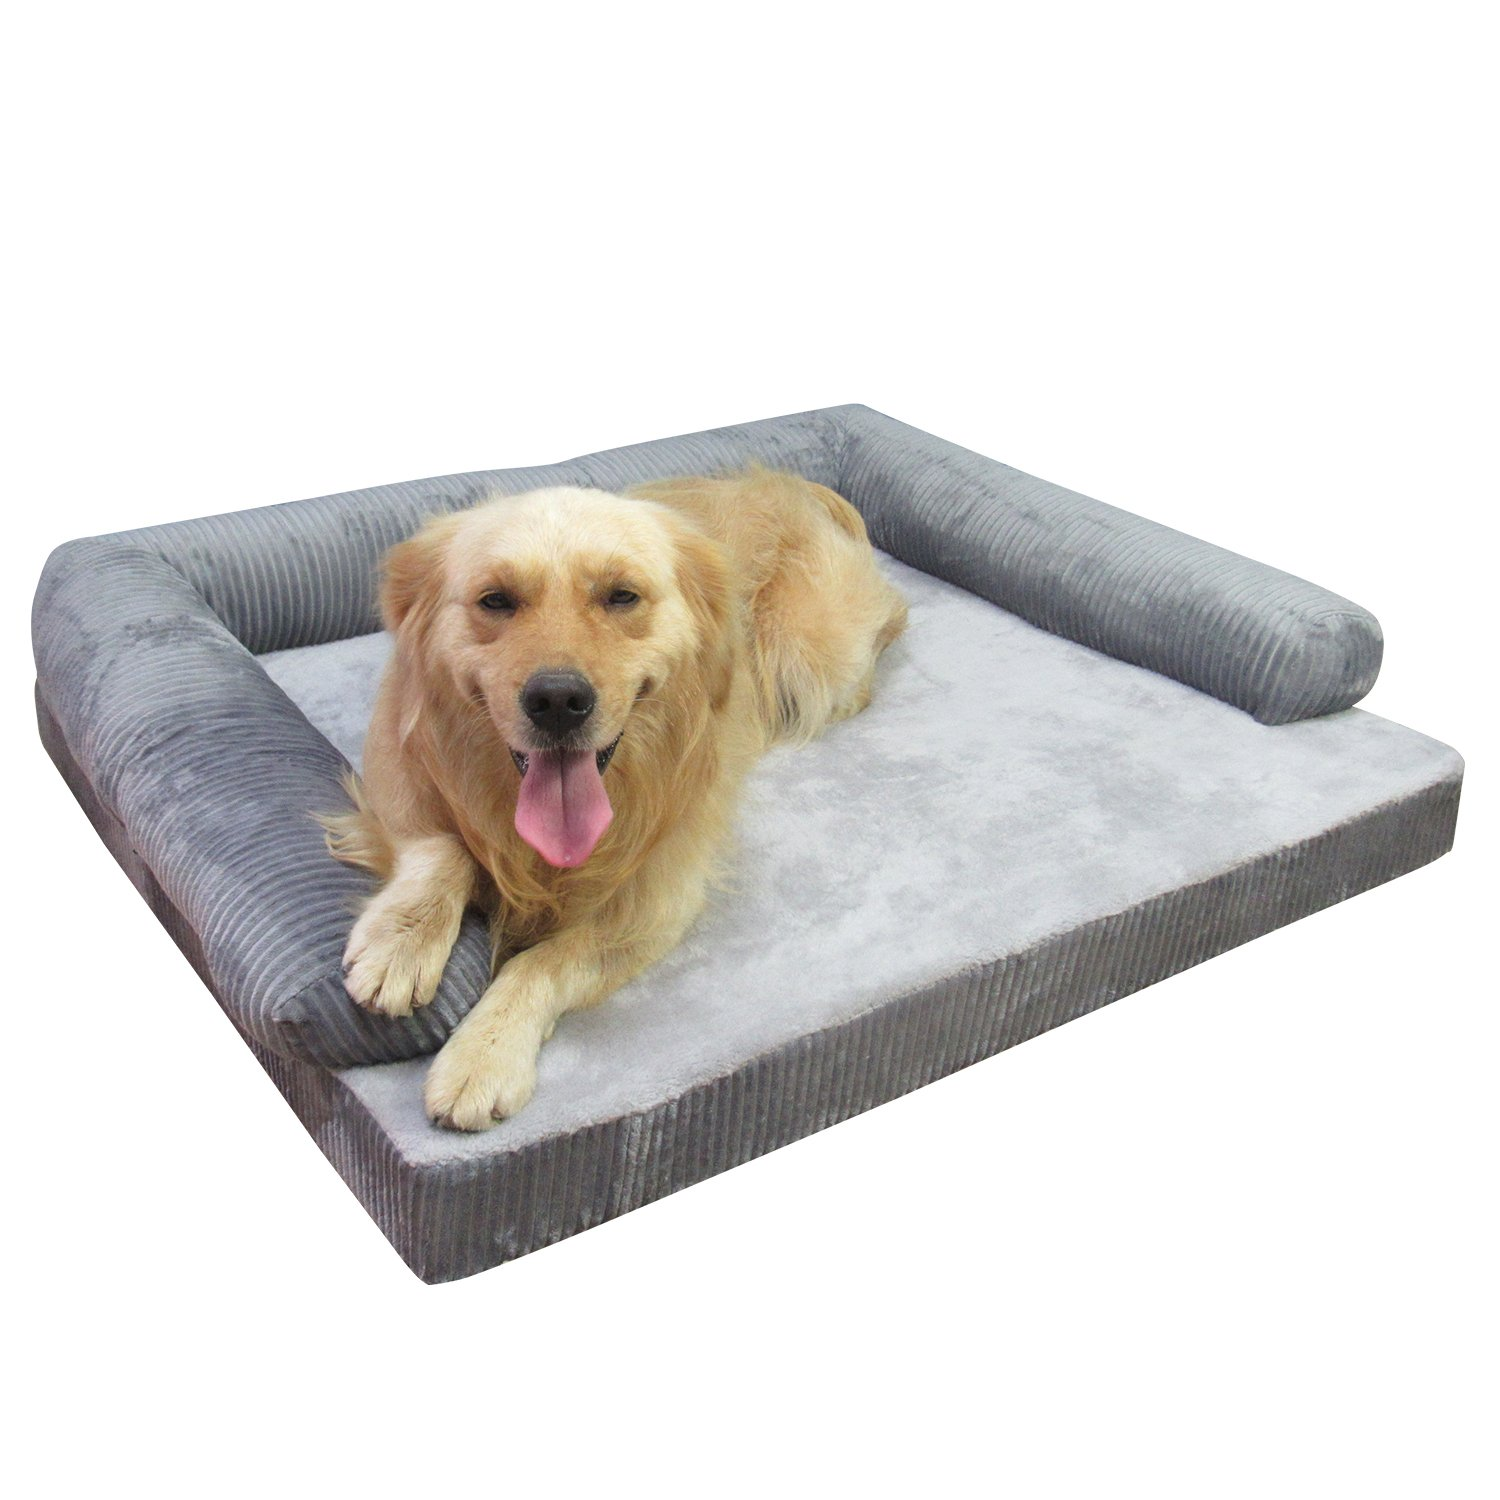 Grey Large = 90 X 75 X 10 CM Grey Large = 90 X 75 X 10 CM AcornPets® B-1411 Ultimate Large Grey 10 CM Solid Memory Foam Dog Sofa Bed Fleece 90 x 75 CM For Large Dogs, High Elasticities Slow Rebound Foam with 3 Side Handrails, Detachable and Washable